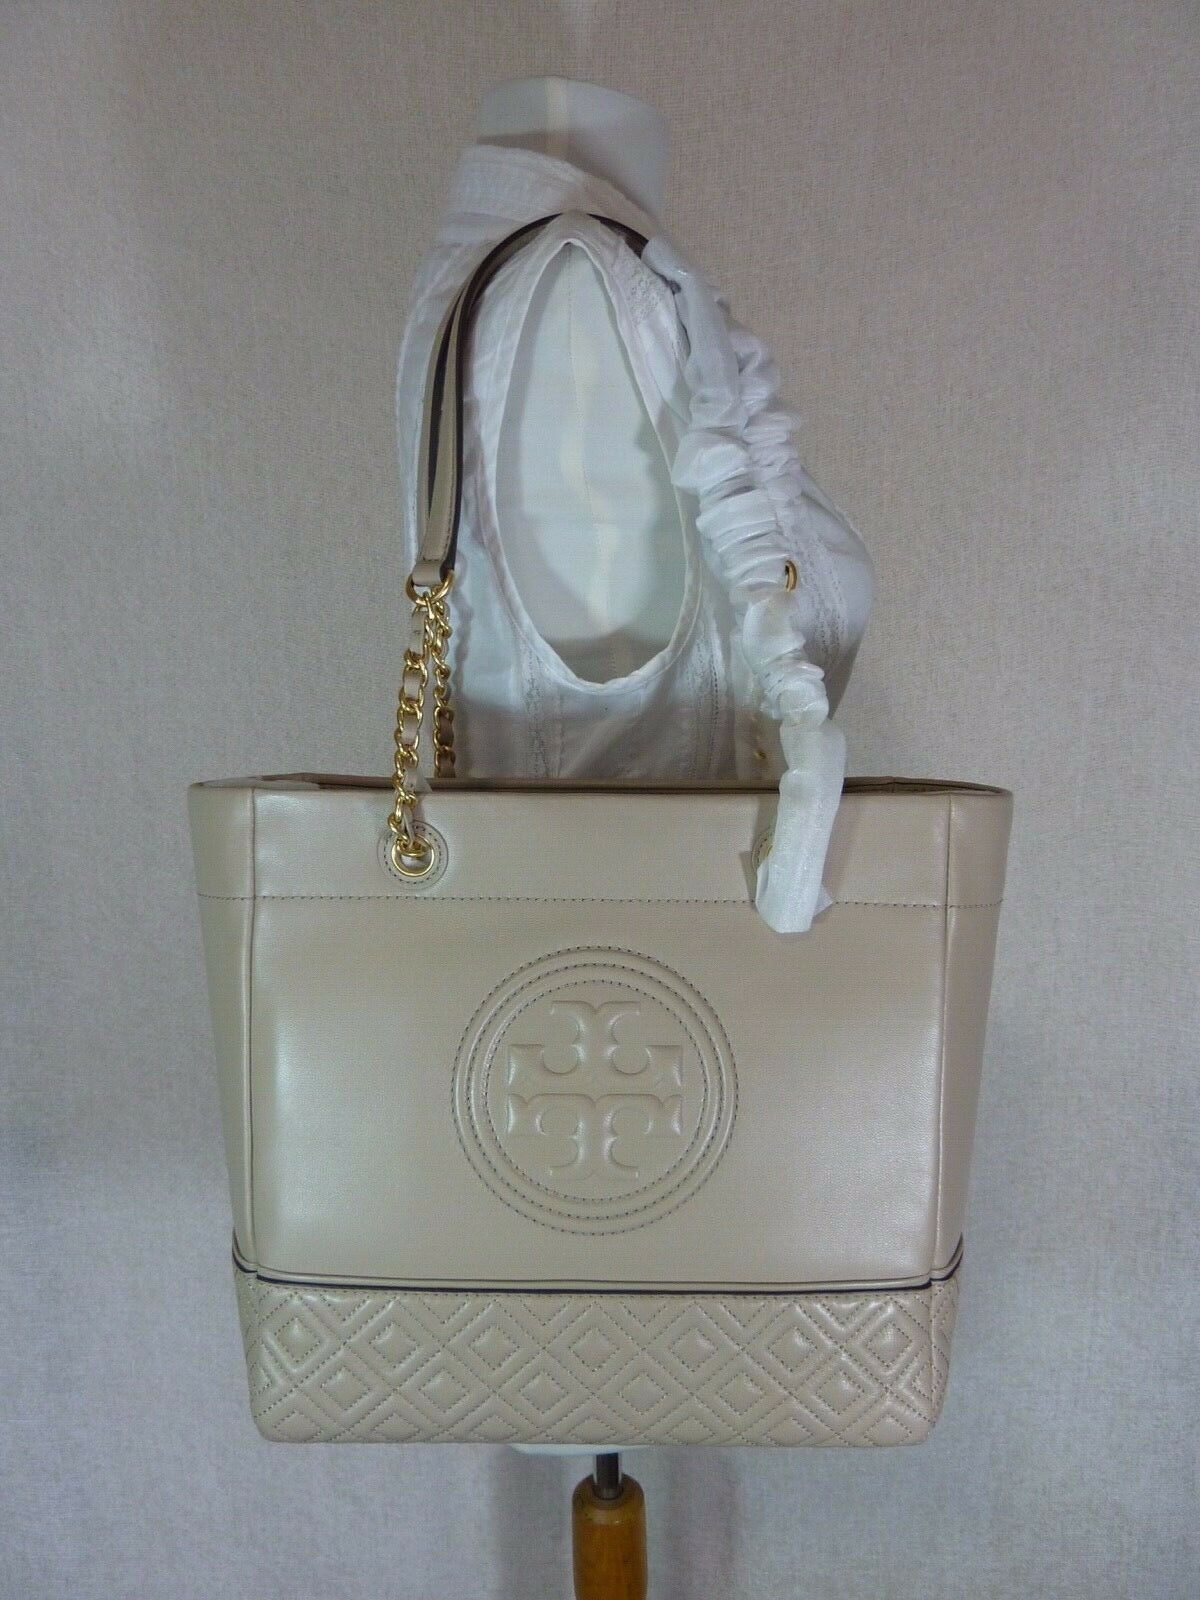 Primary image for NWT Tory Burch Light Taupe Leather Fleming Medium Tote $558